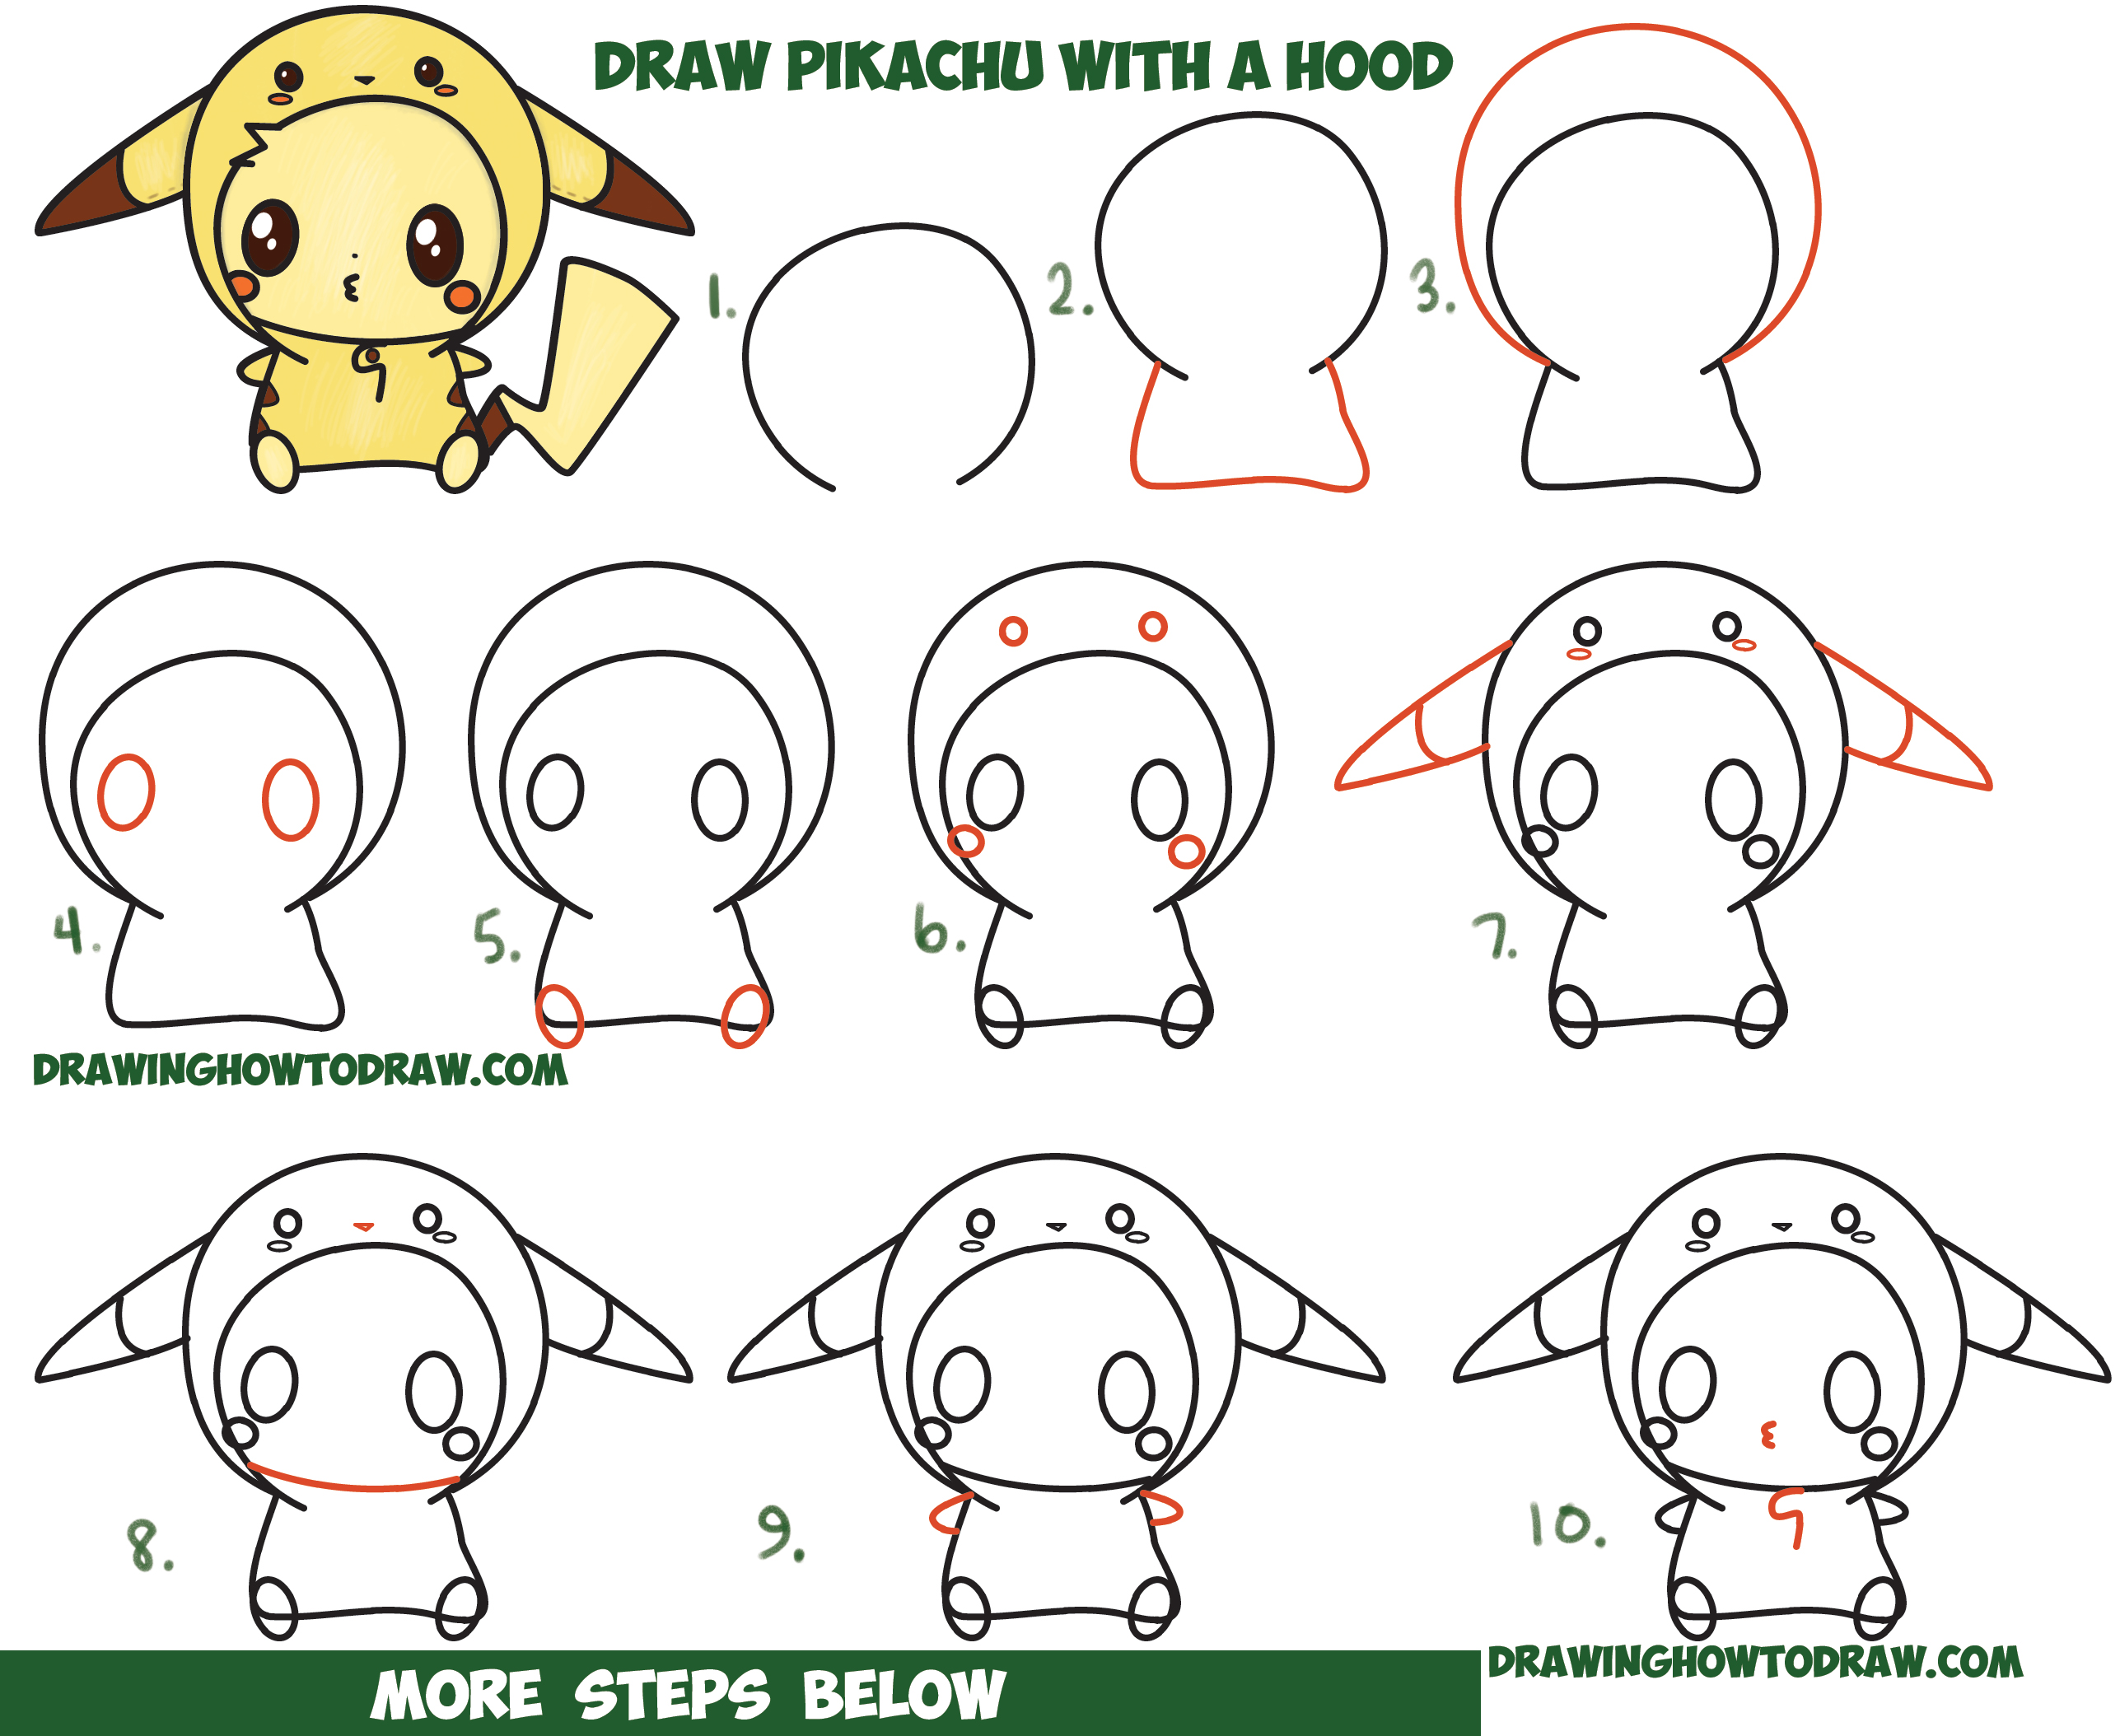 How to Draw Cute Pikachu with Costume Hood from Pokemon (Kawaii / Chibi Style) Easy Step by Step Drawing Tutorial for Kids and Beginners